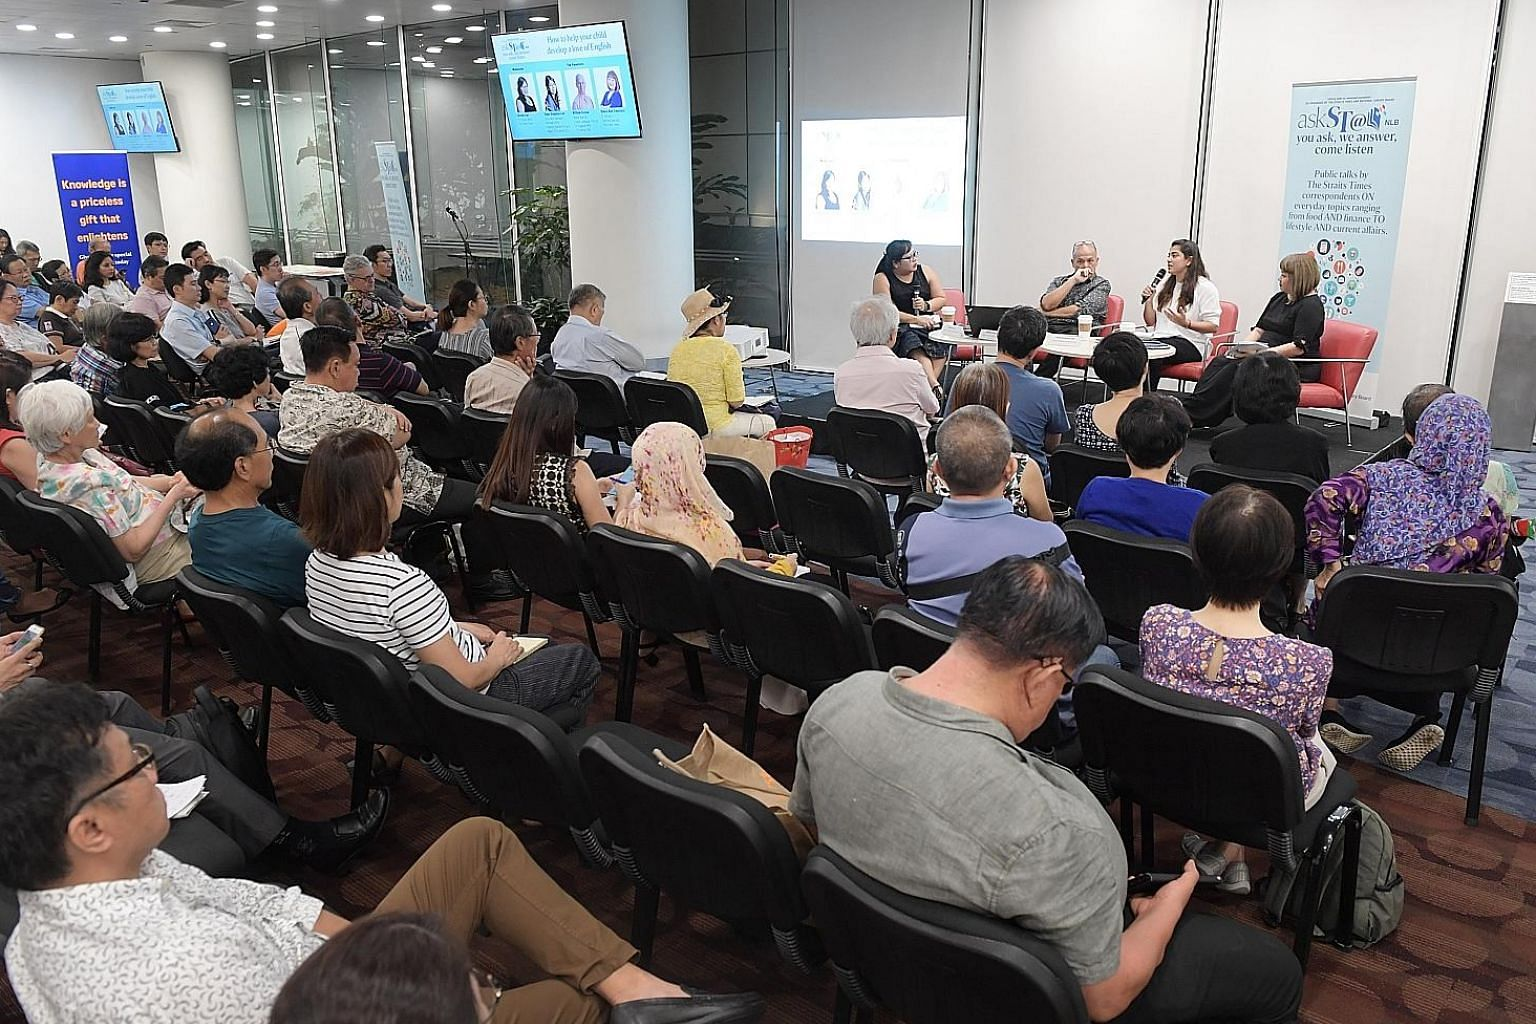 Mrs Anne Kingsley-Lee, a curriculum specialist at Rainbow Centre, recounting her experience with her son to a crowd of 230 people at the askST@NLB session at the Central Public Library on Friday. With her on the panel were moderator and Straits Times